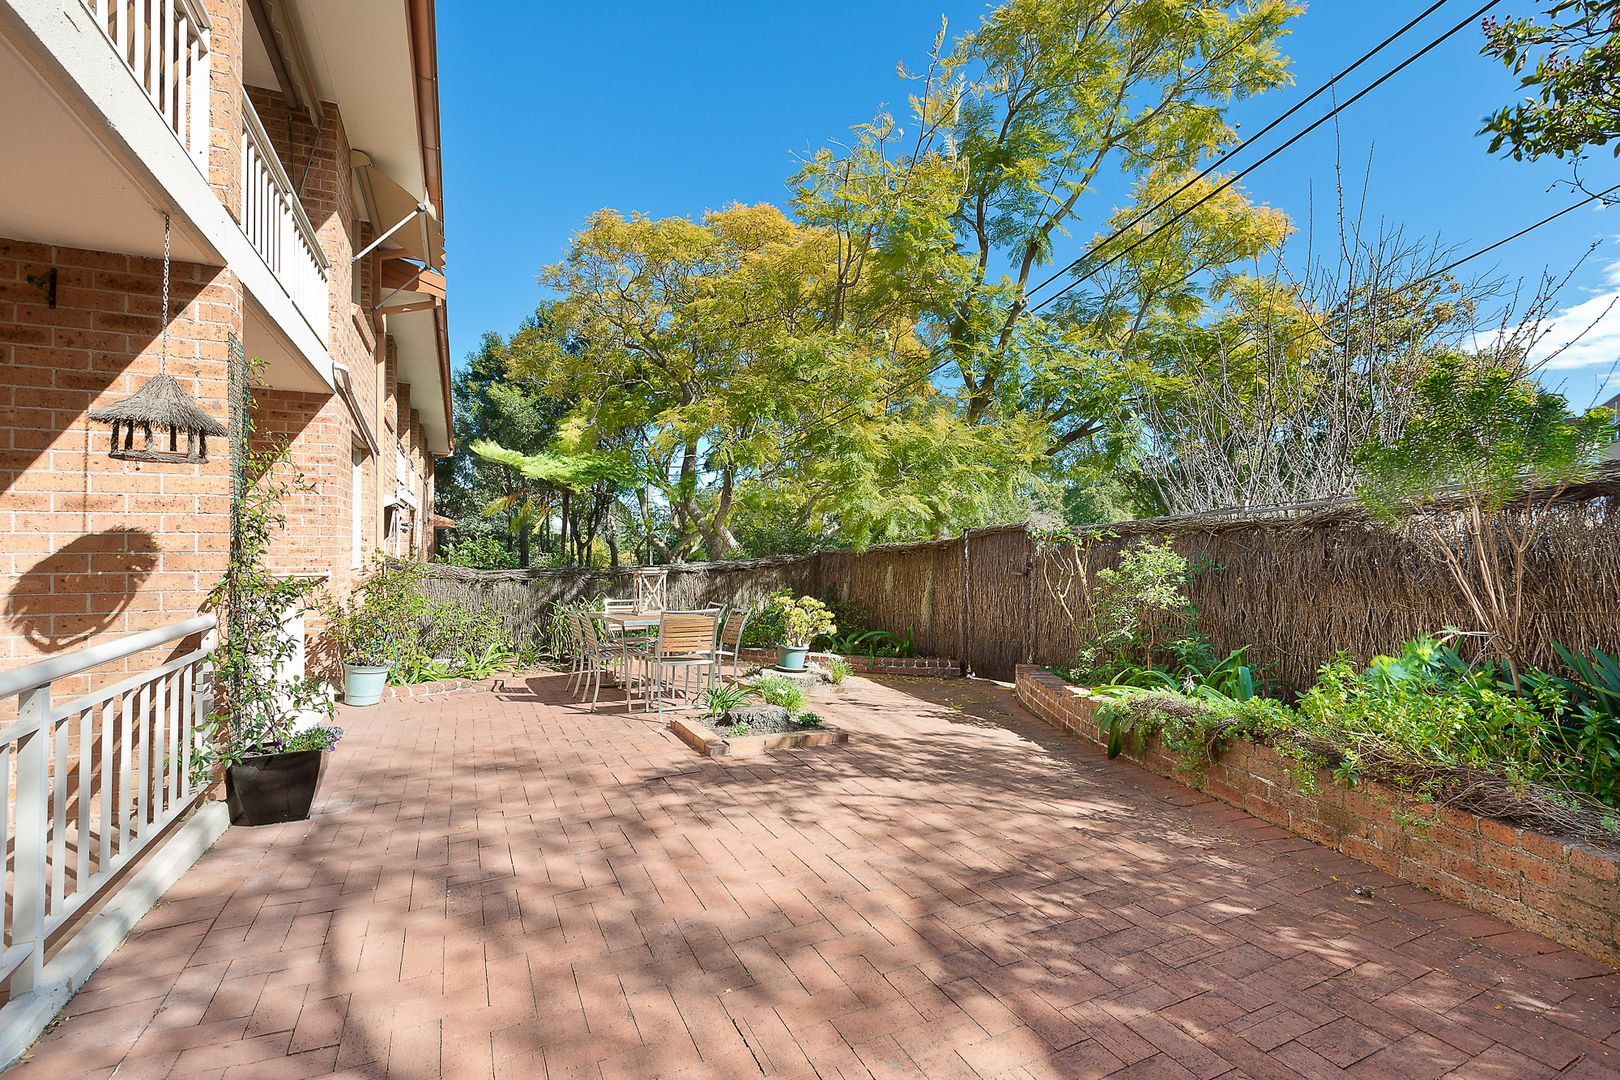 20/1-7 Bent Street, Lindfield NSW 2070, Image 1